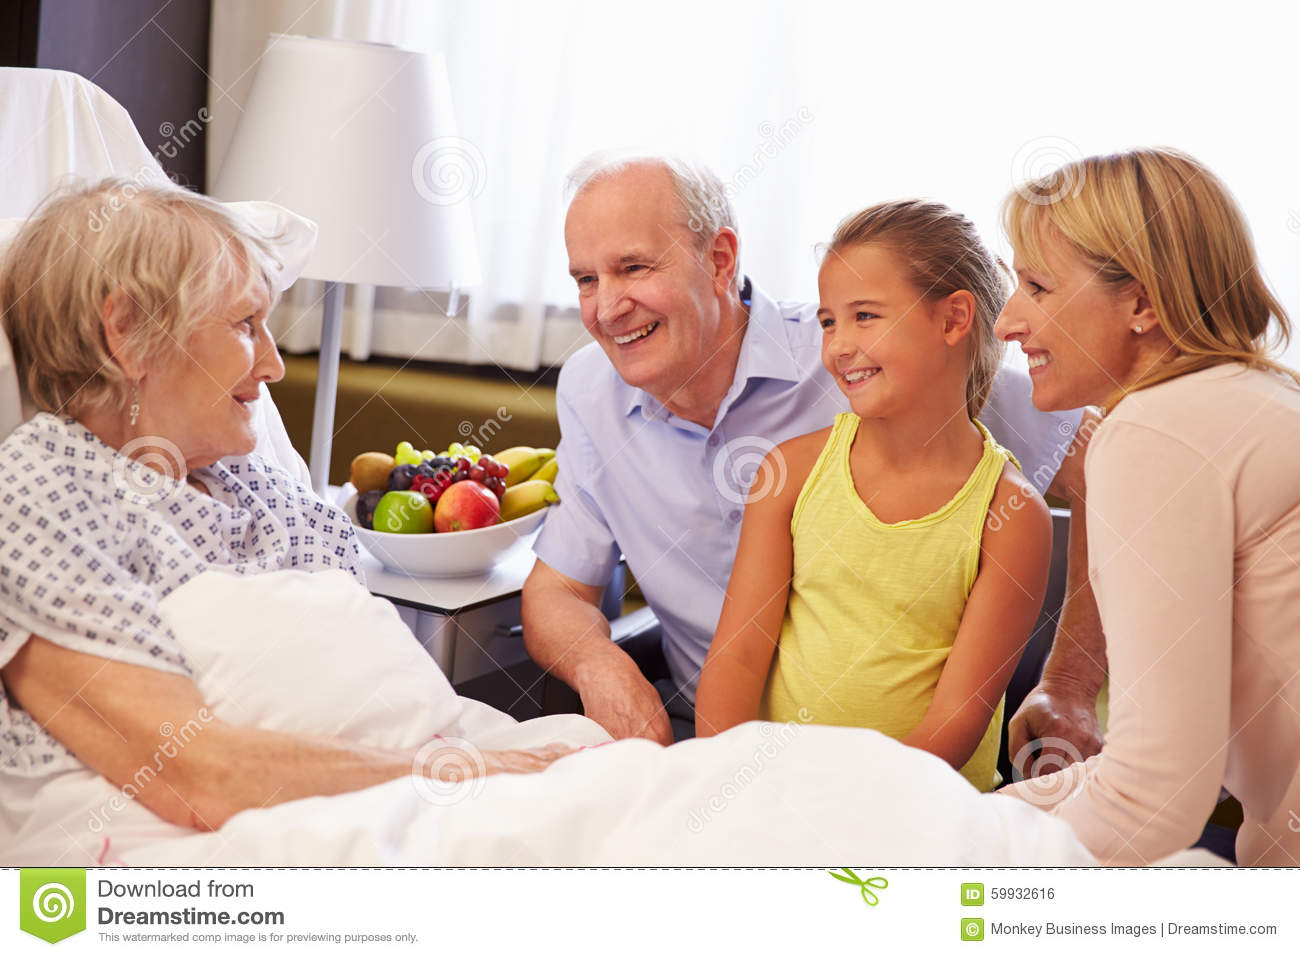 Person in hospital bed with family